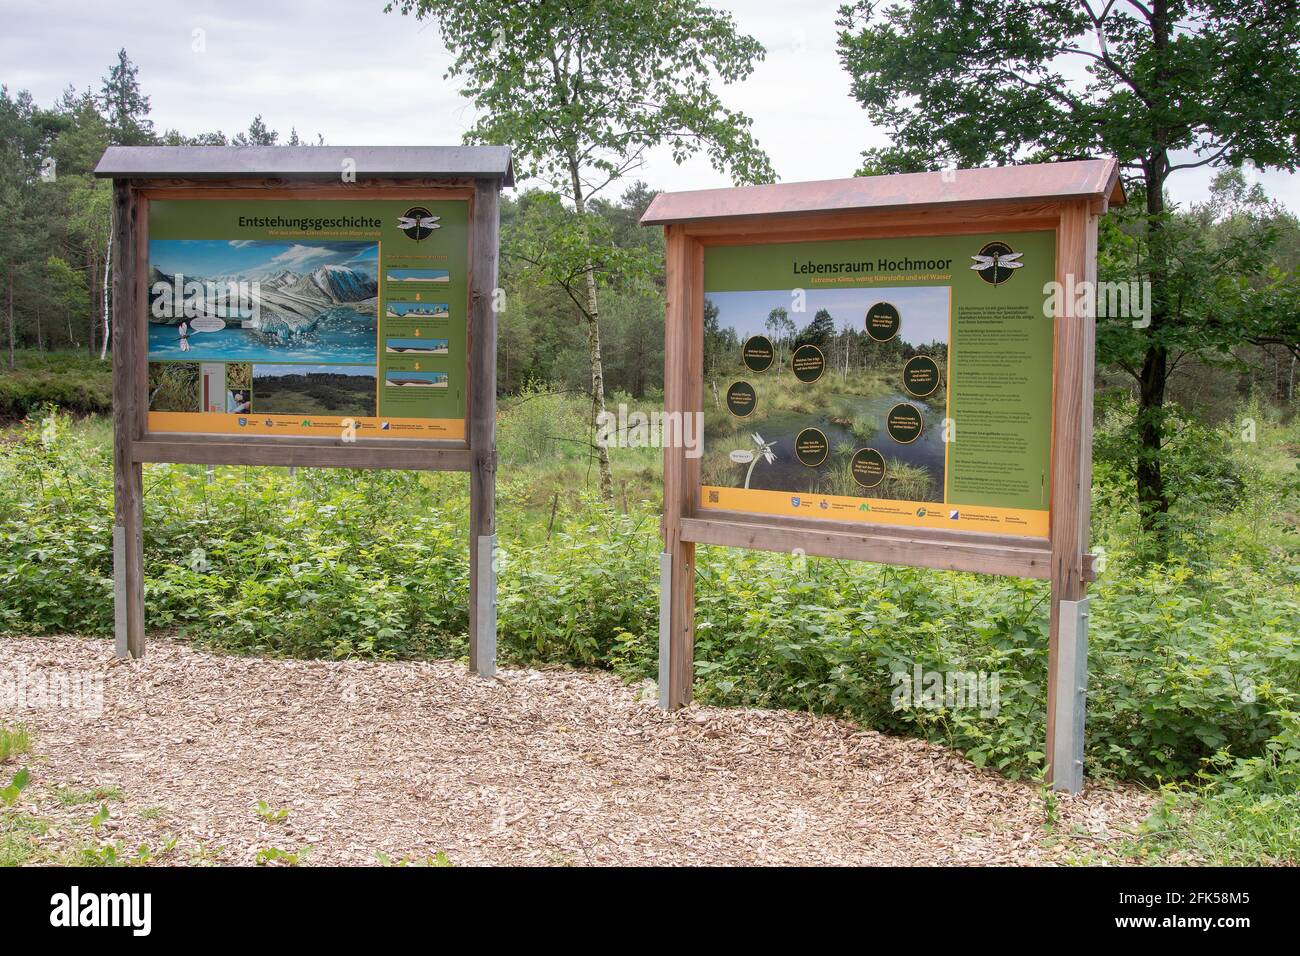 Schautafeln High Resolution Stock Photography and Images   Alamy